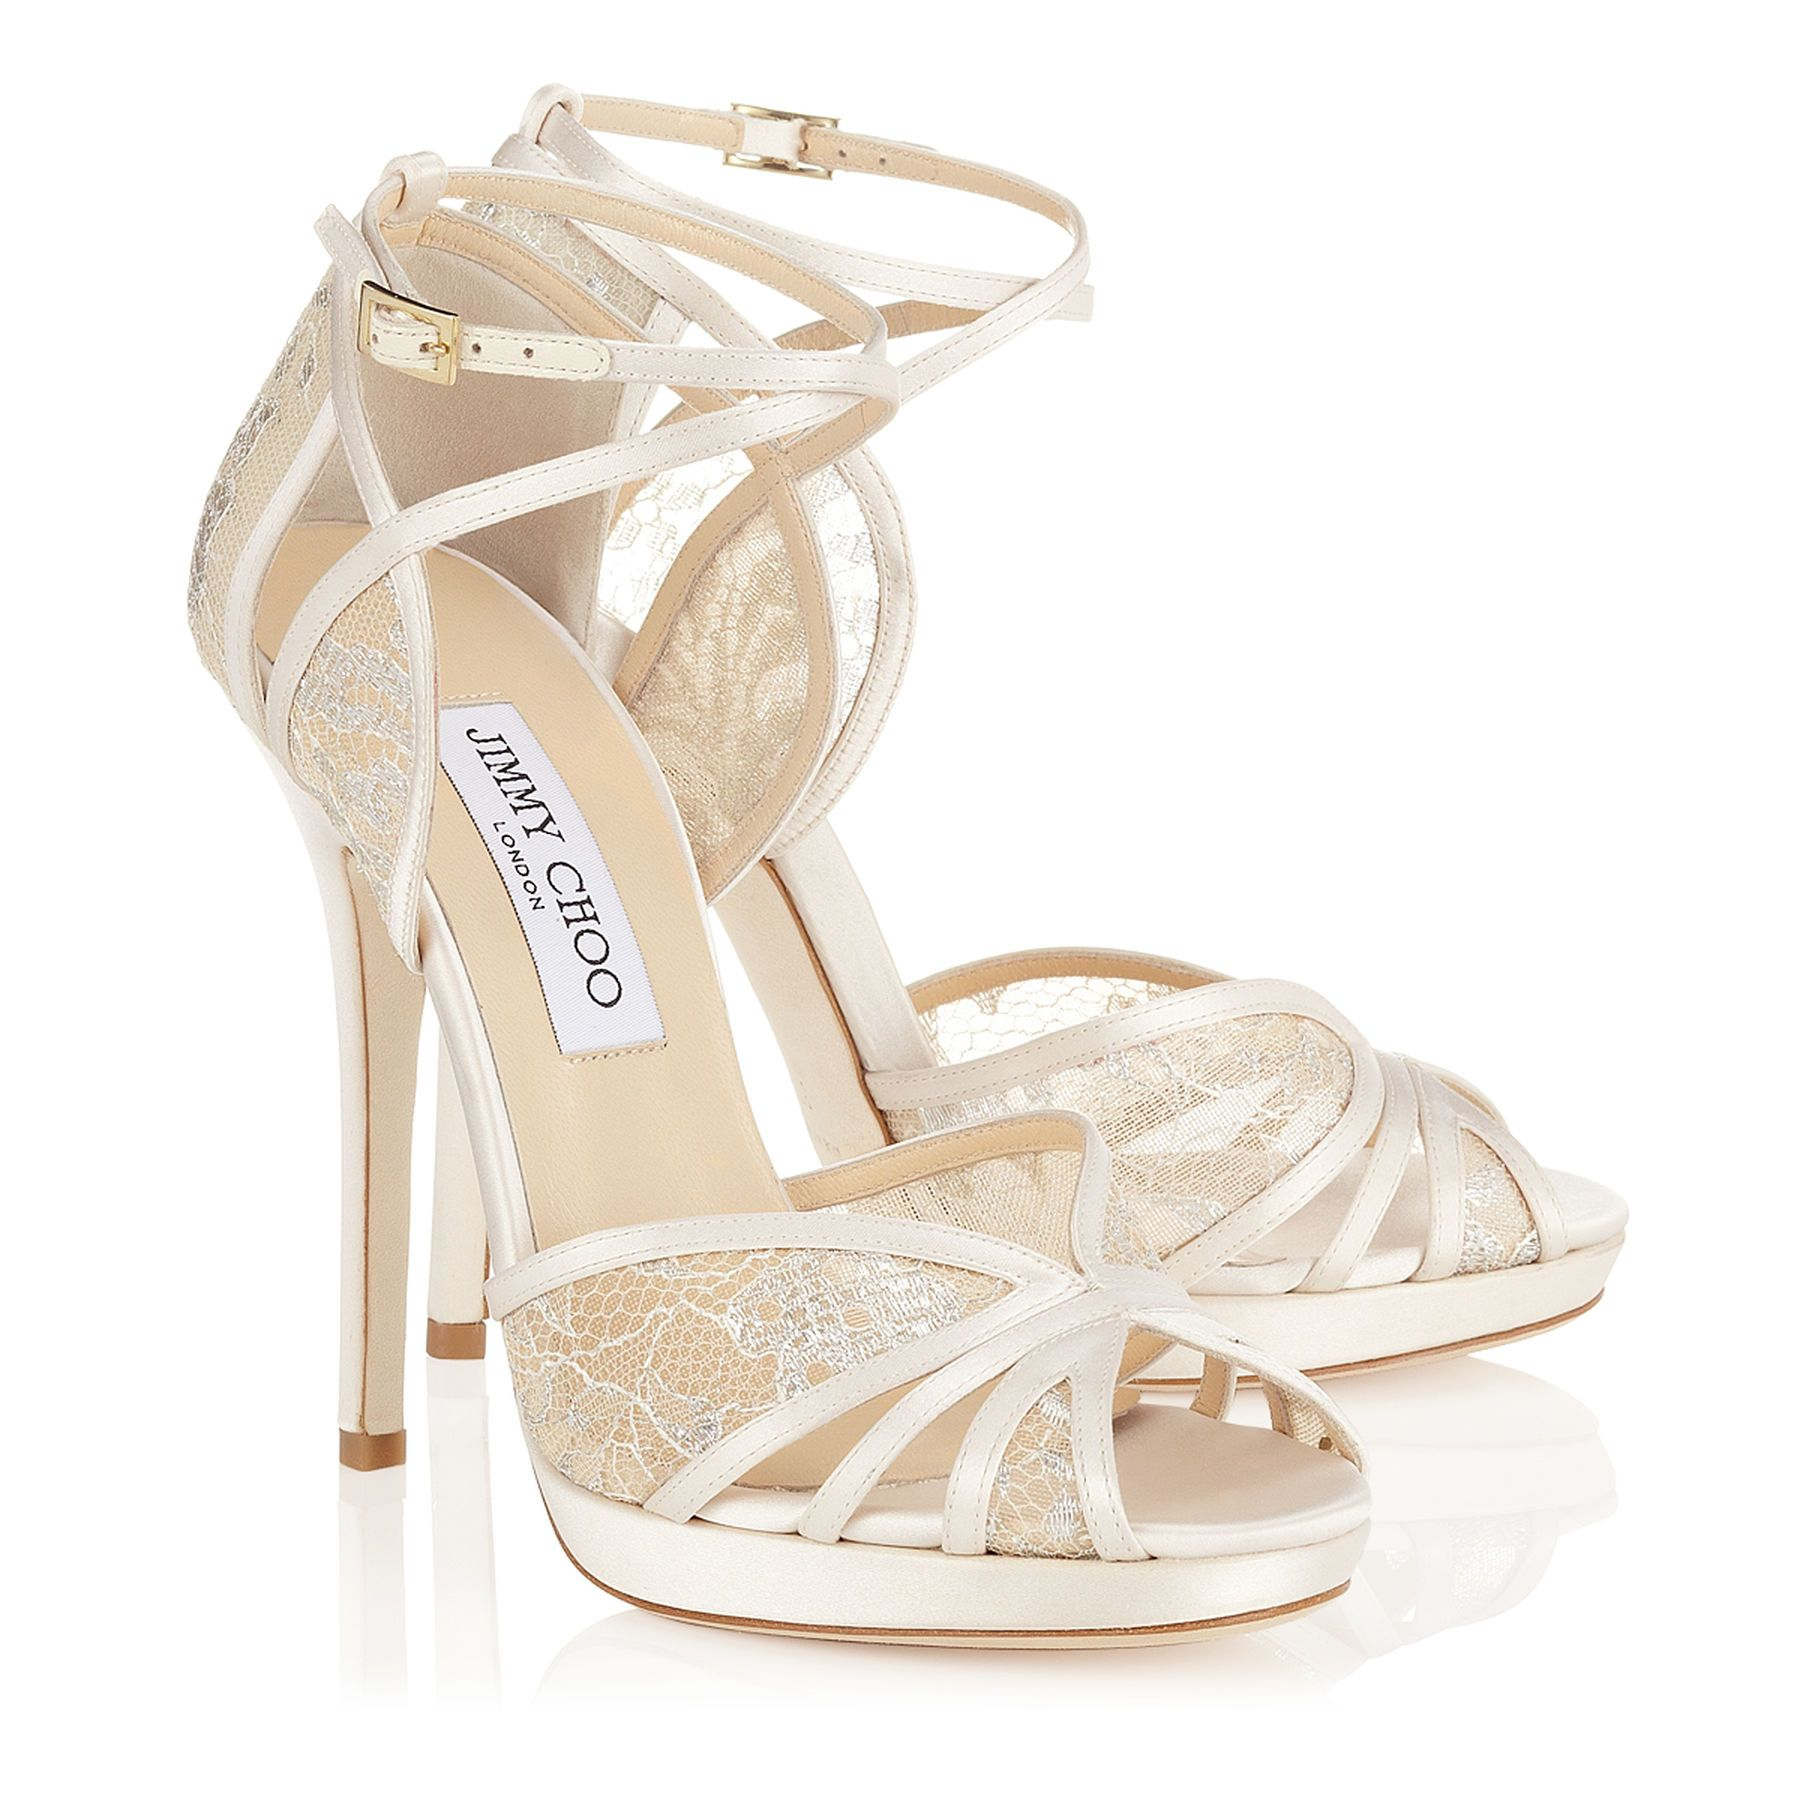 f73c7fd10c3 Fayme Ivory and White Satin Sandals